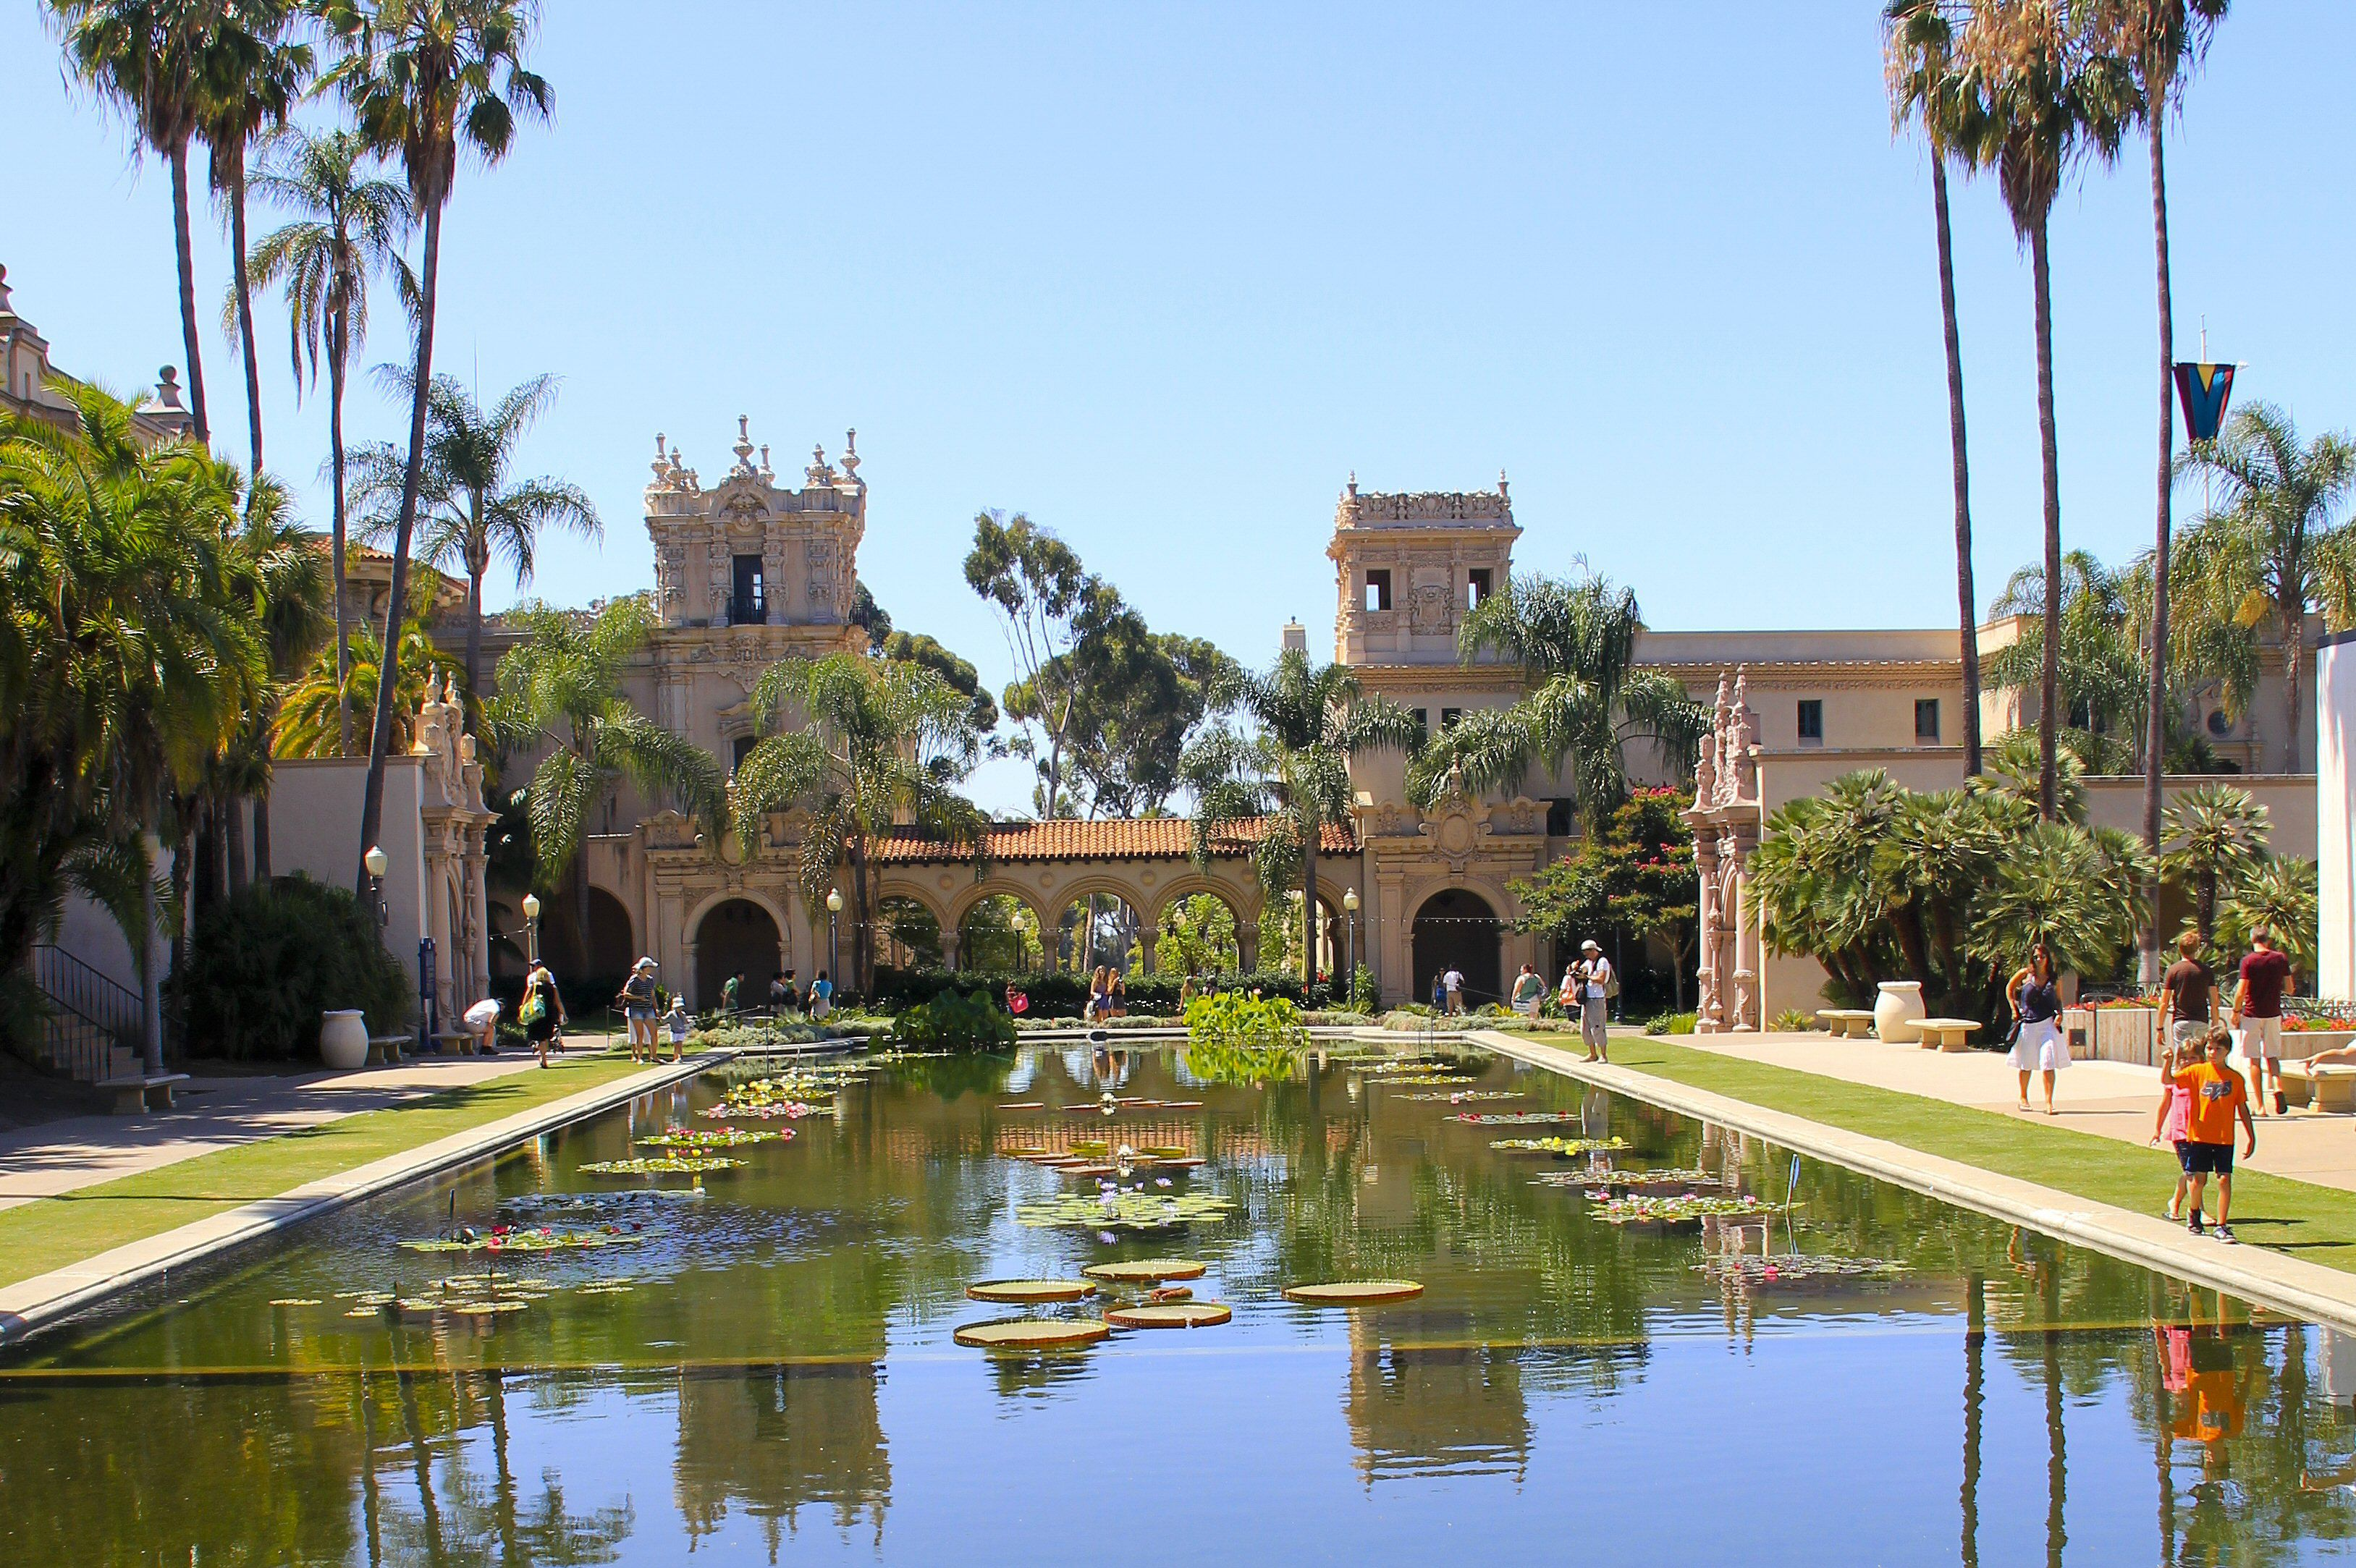 two towers connected by arched walkway with a landscaped pond in the foreground